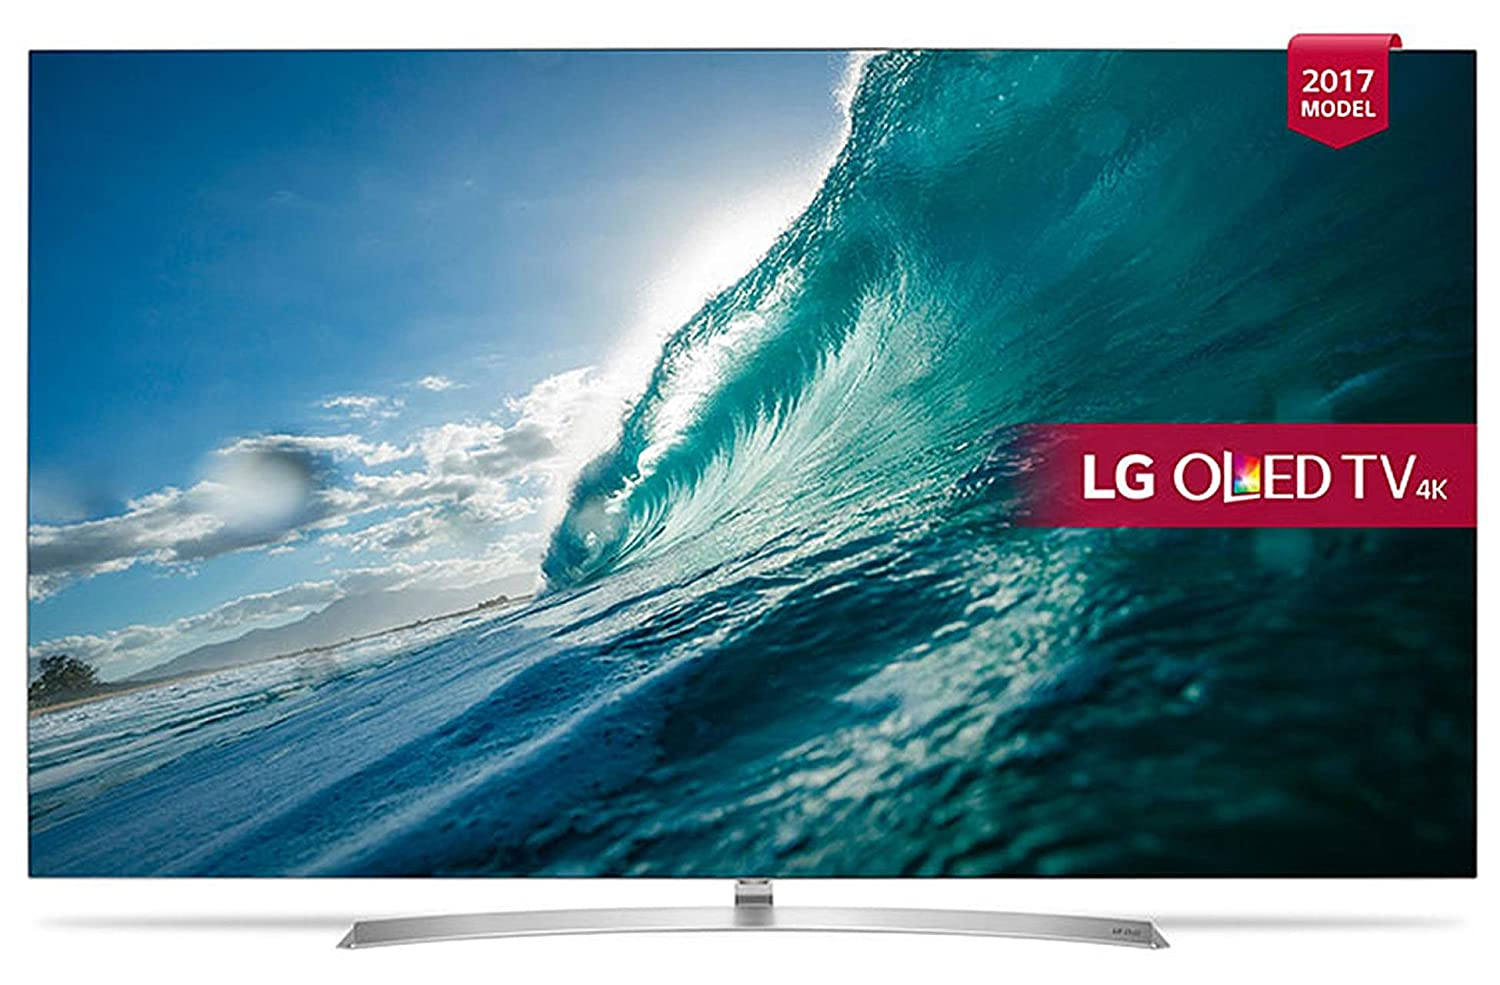 Tv OLED LG 55B7V 4K Ultra HD